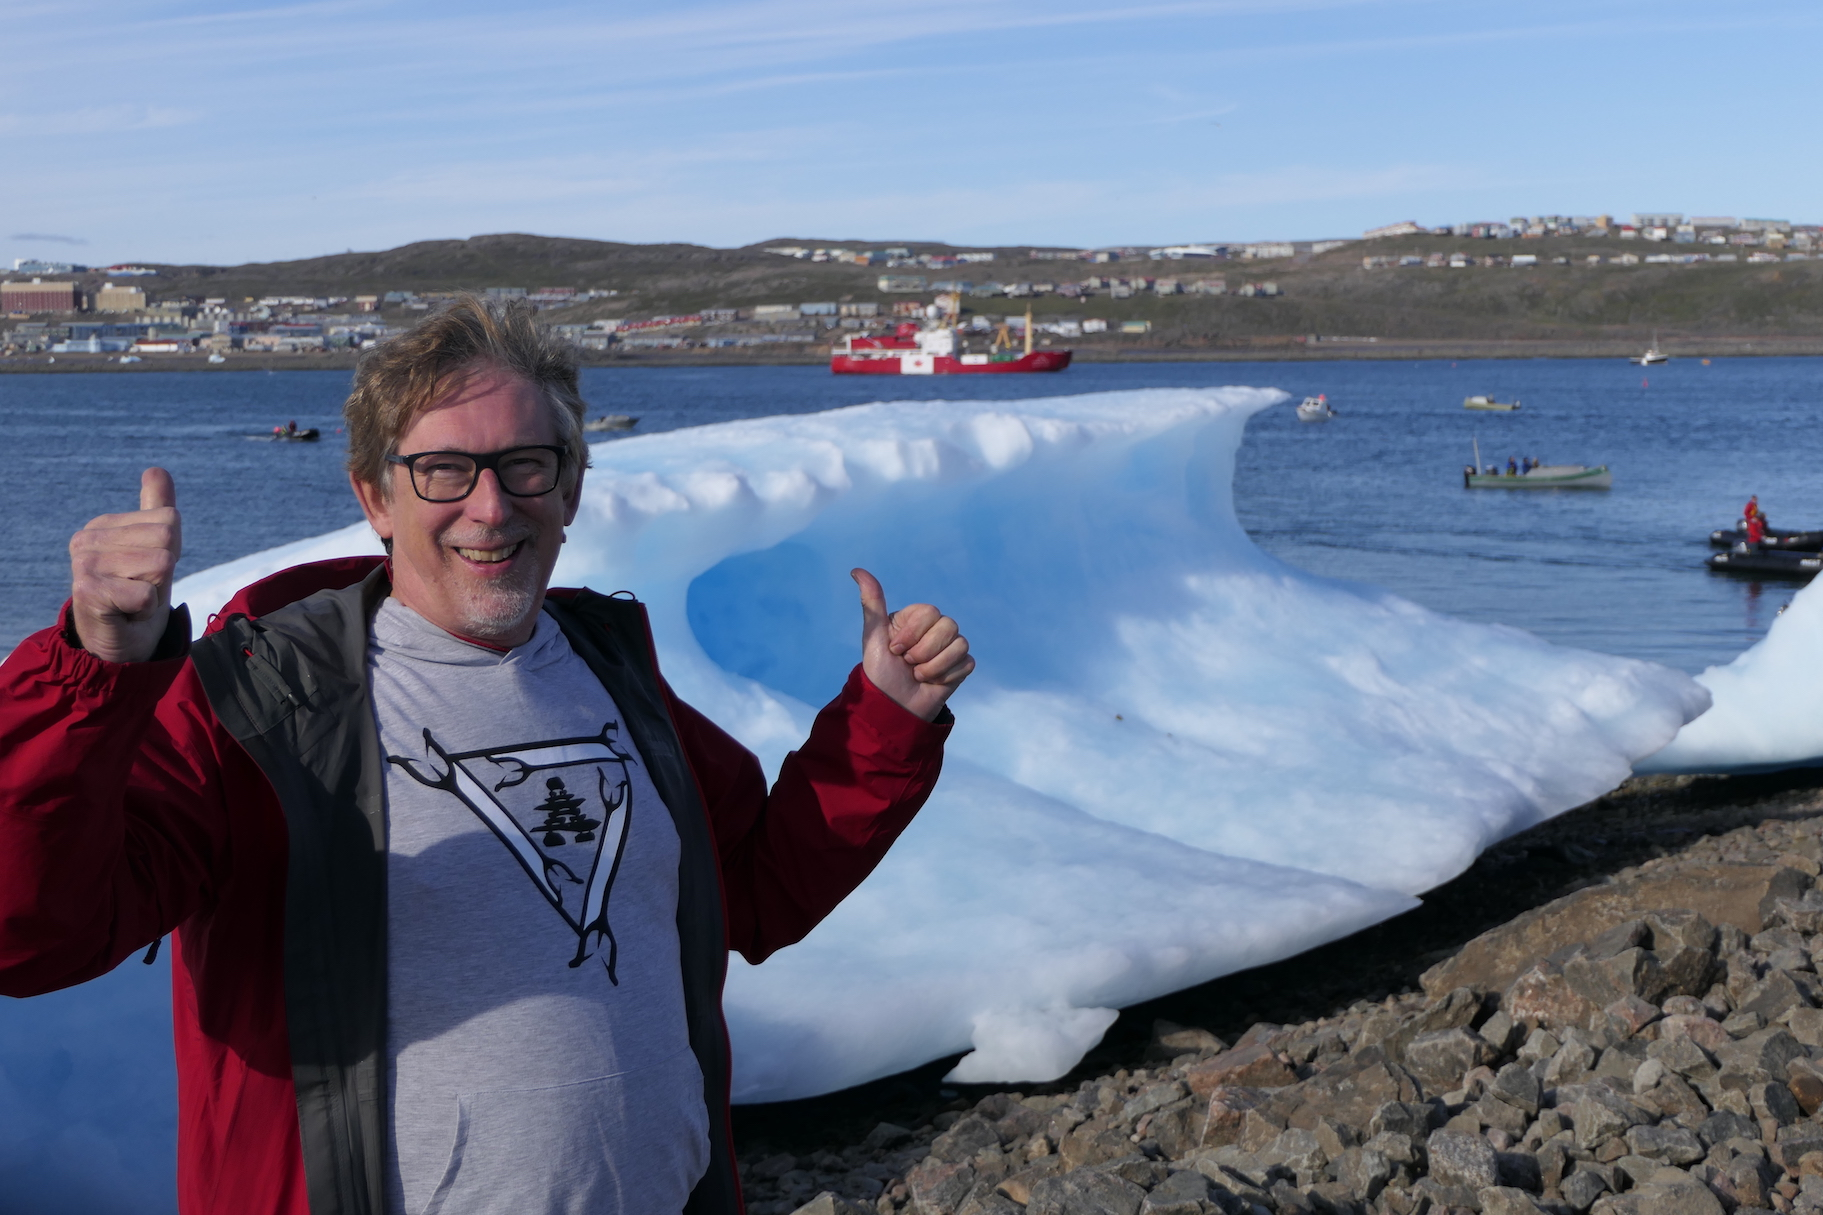 Randall with C3 in Iqaluit